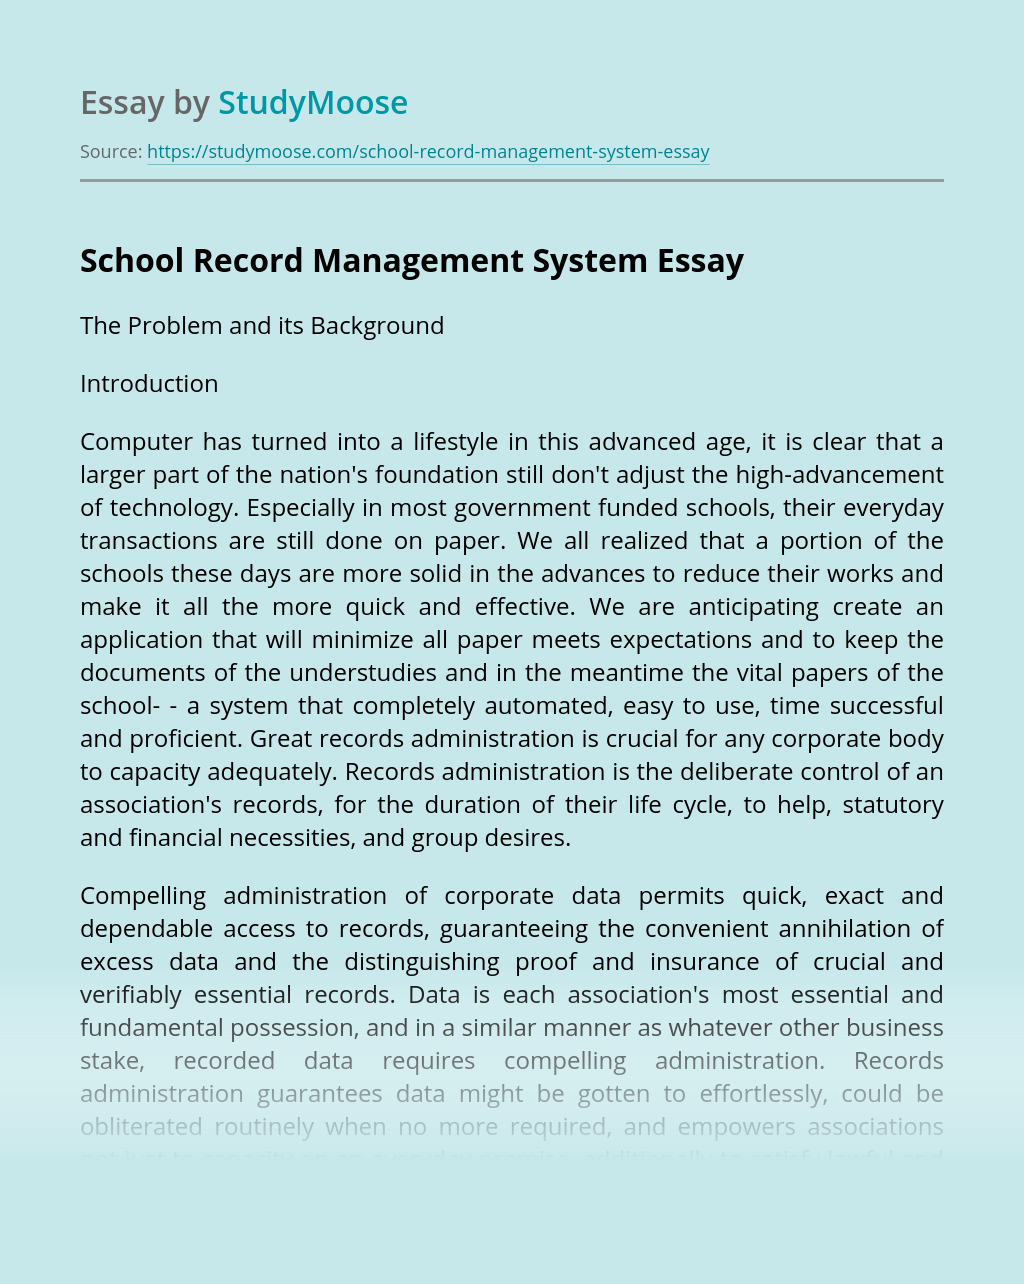 School Record Management System